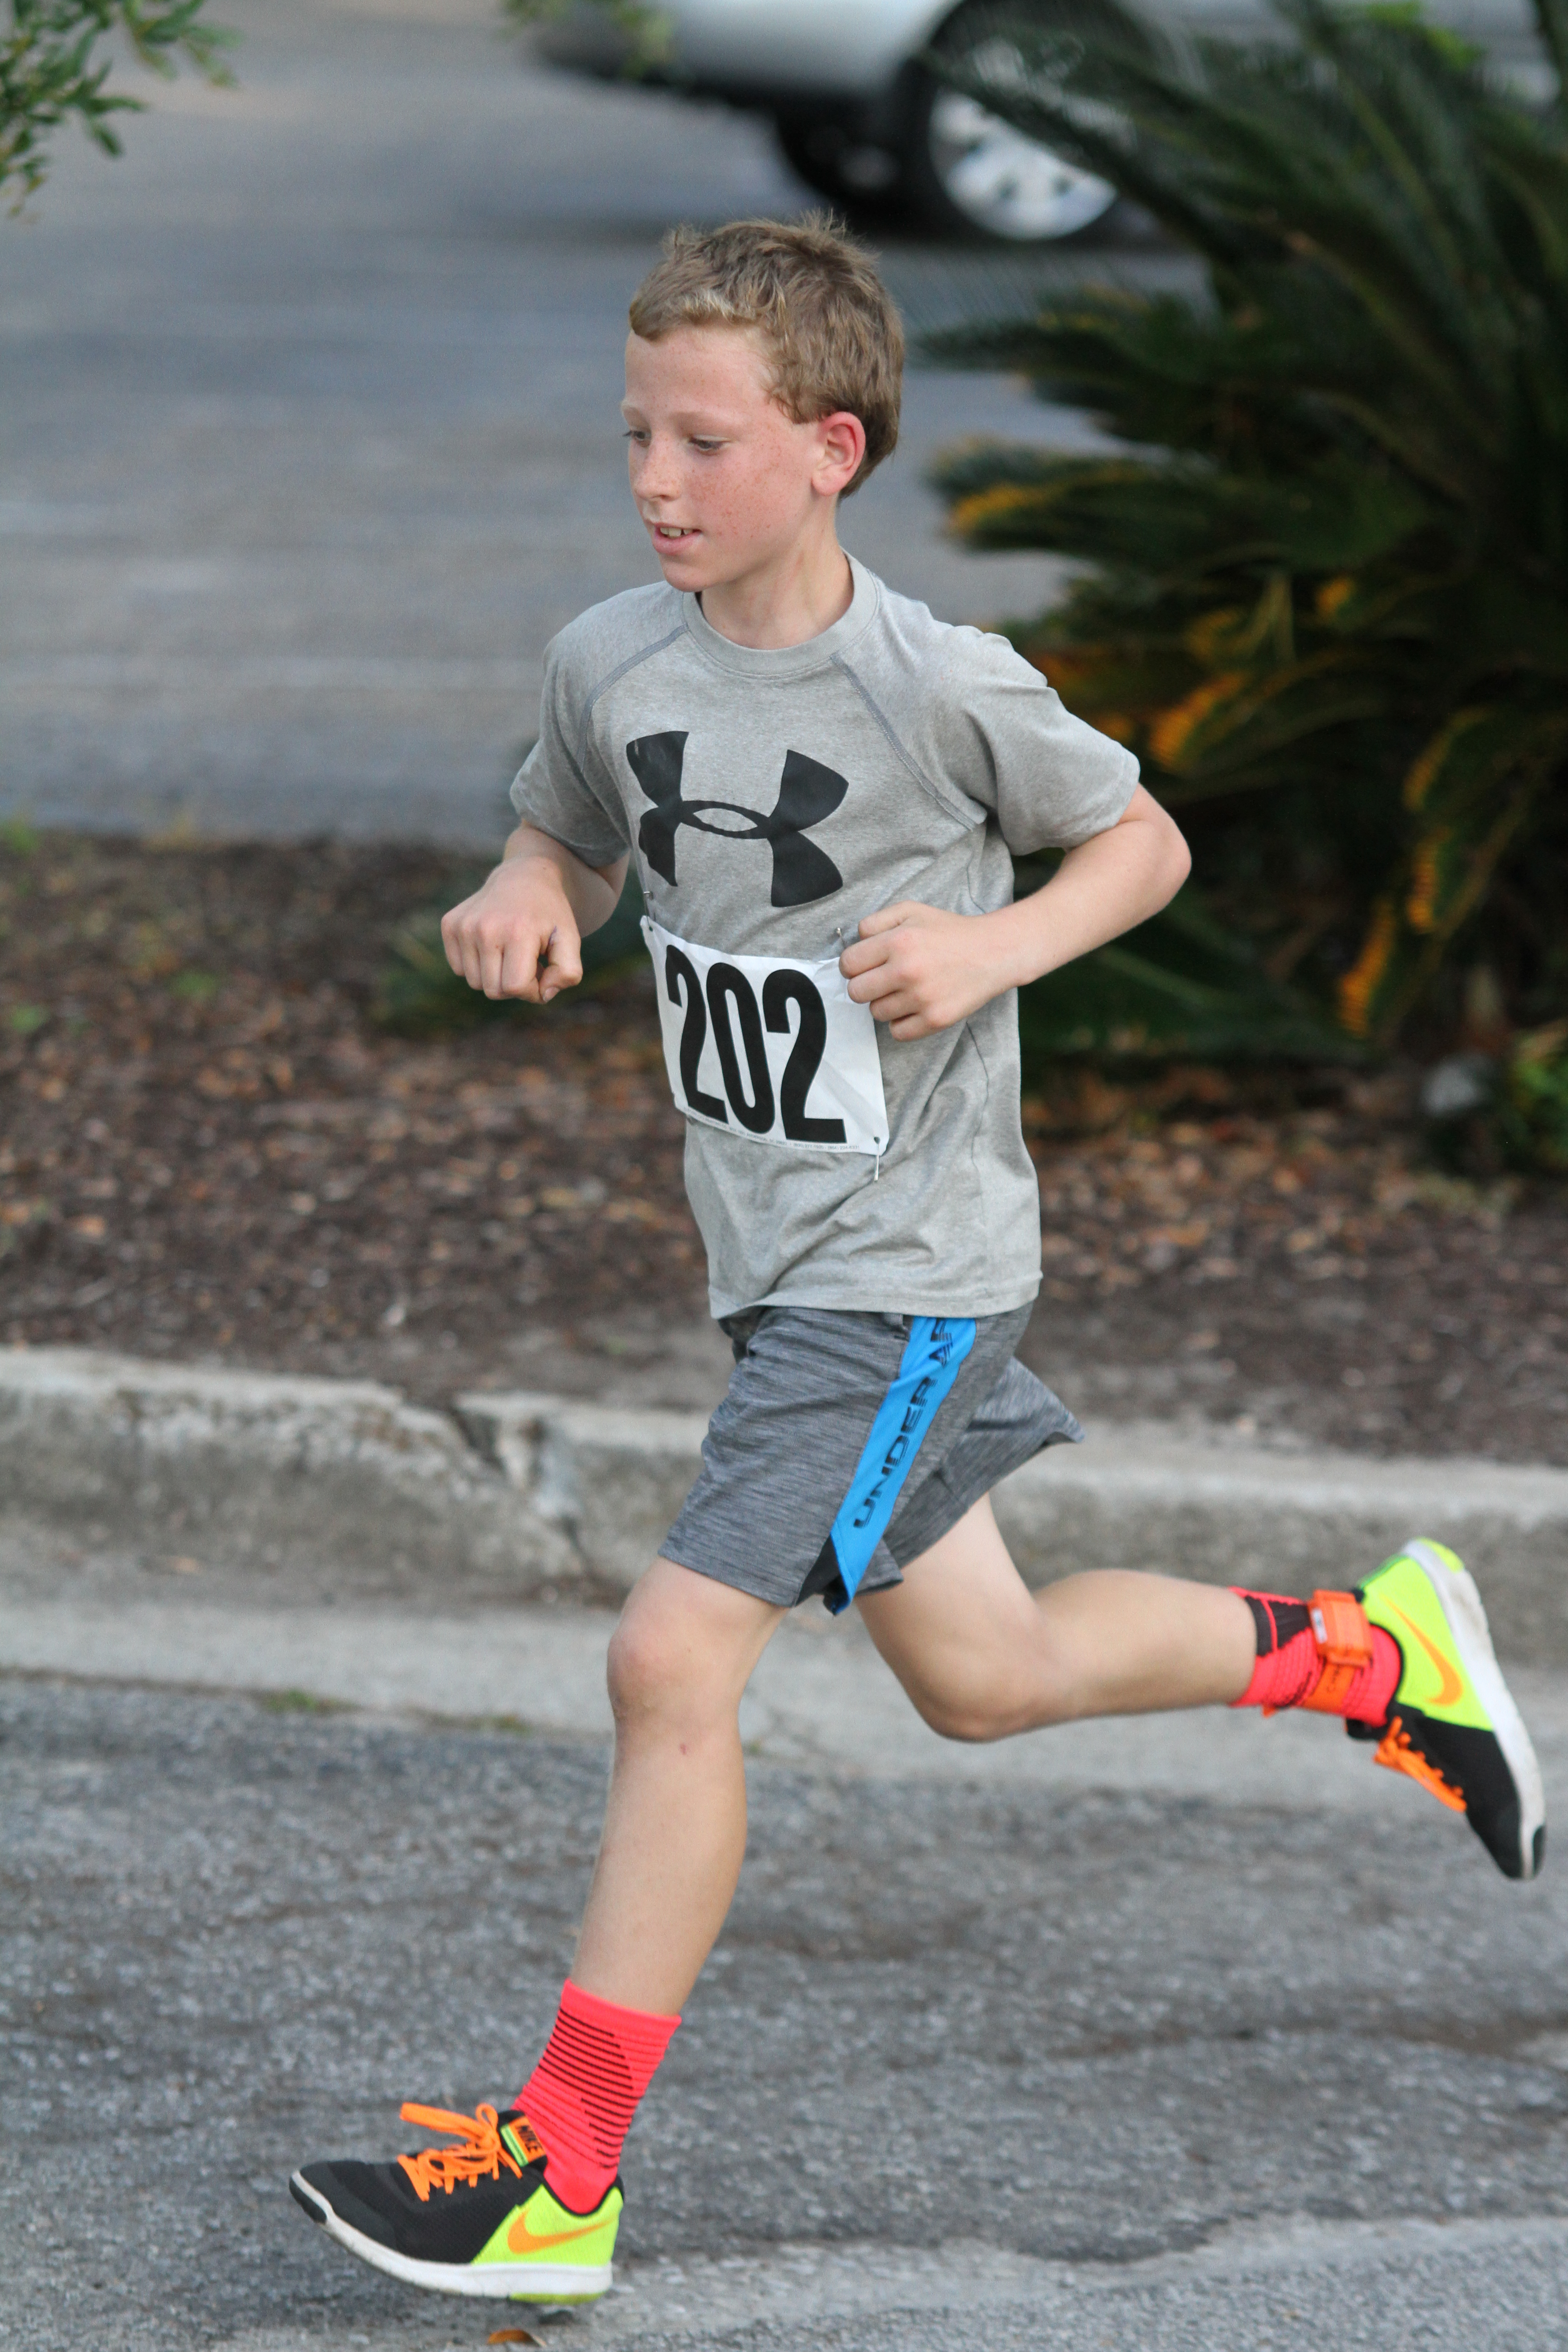 11 year-old Preston Kut running in on e of the Bulldog Breakaway 5K events